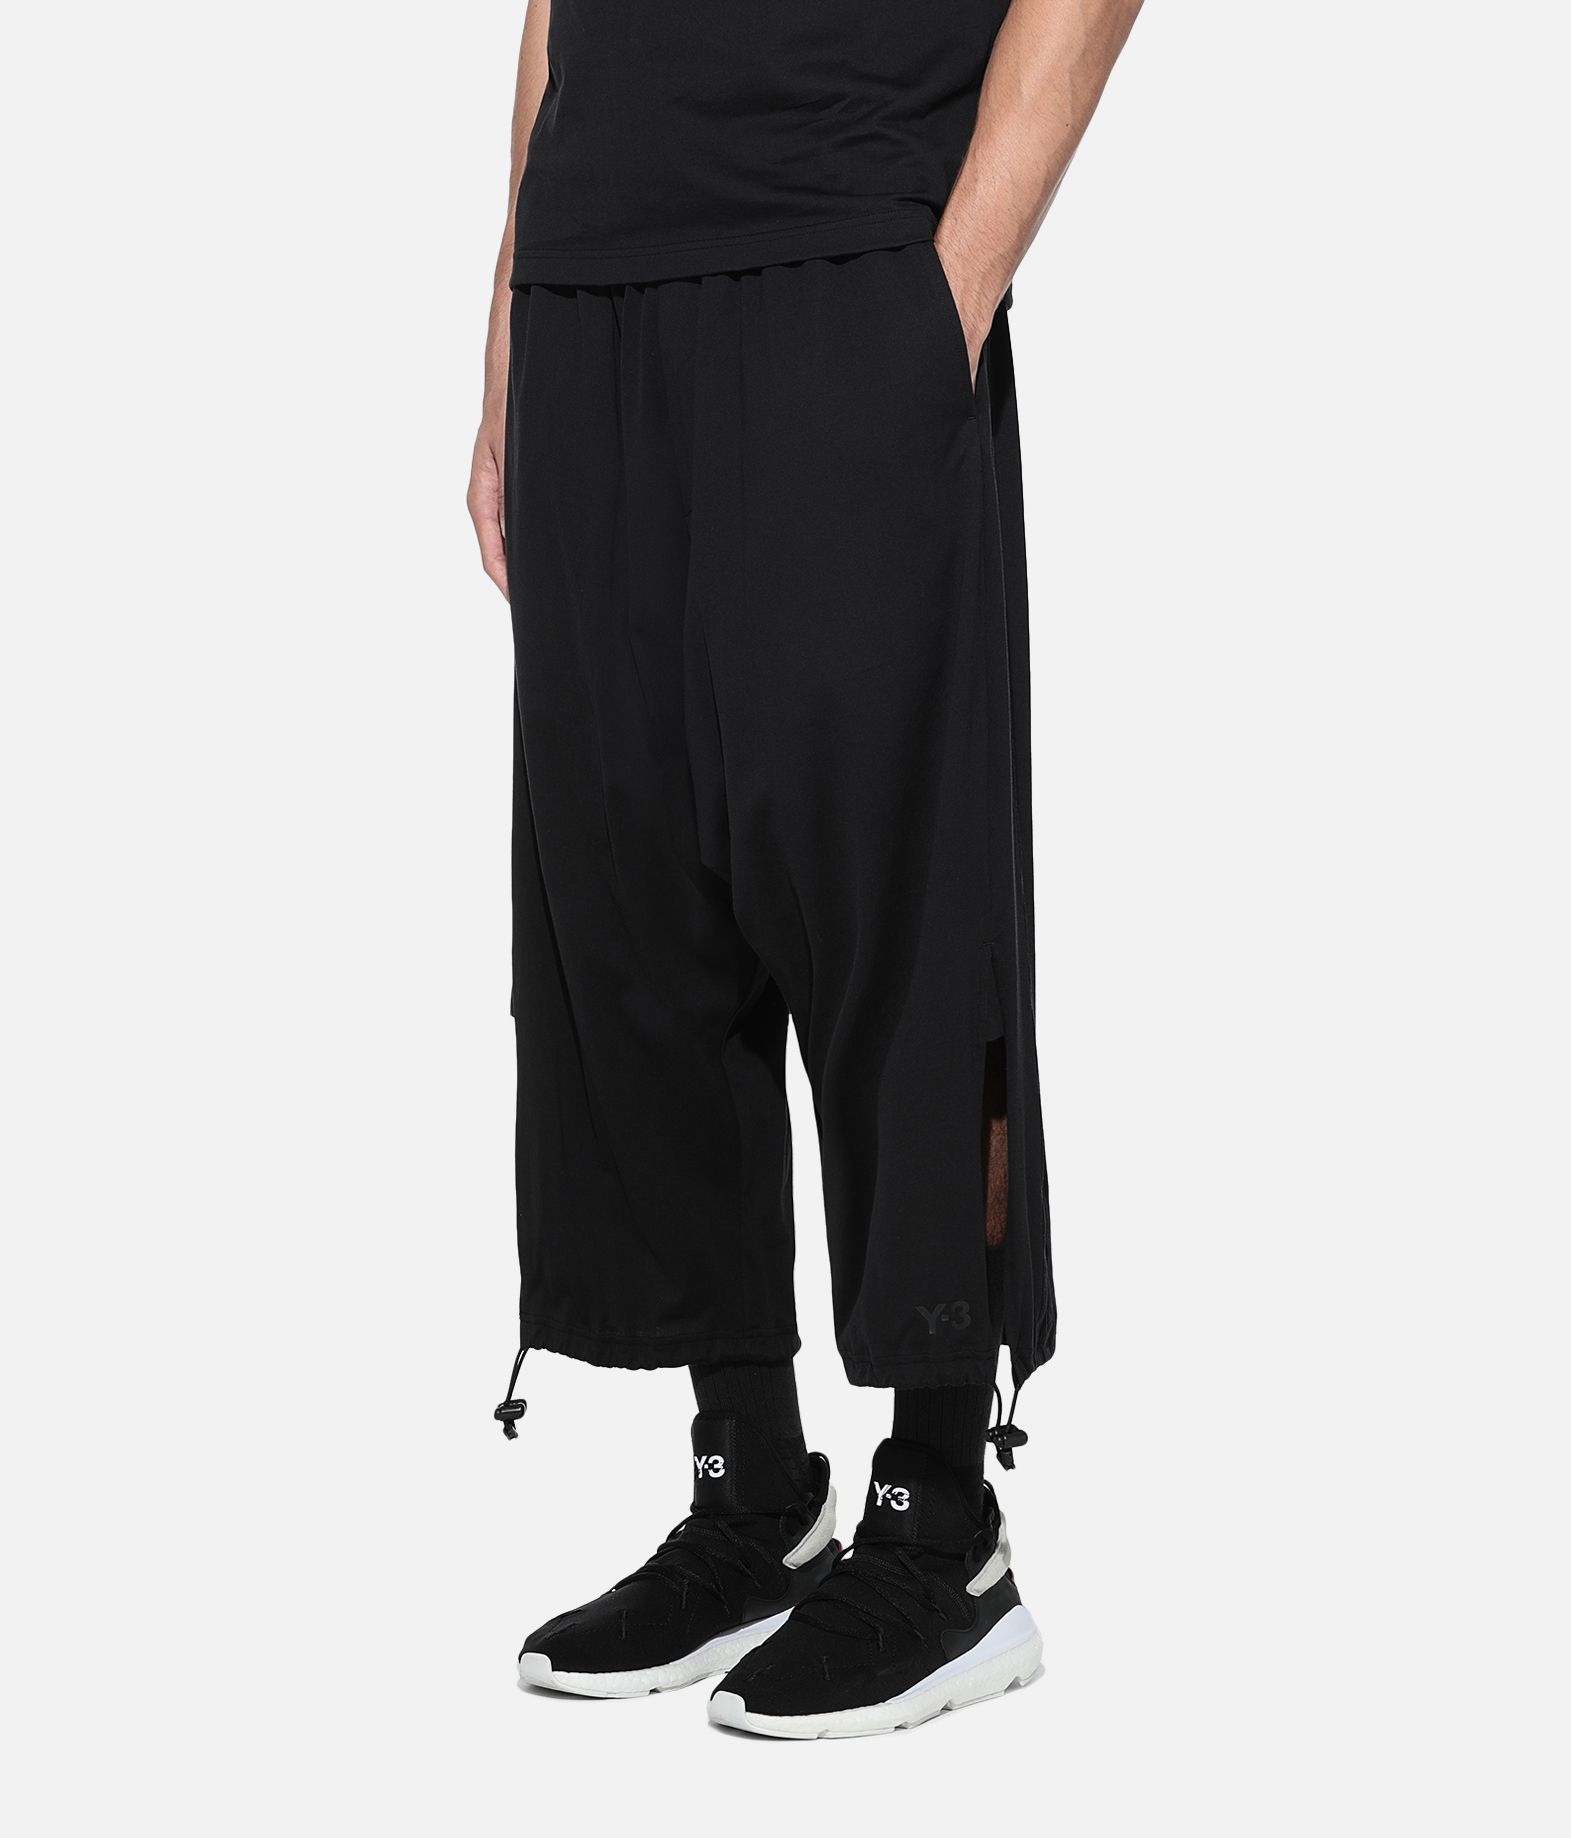 Y-3 Y-3 Drawstring 3/4 Pants Cropped pant Man e